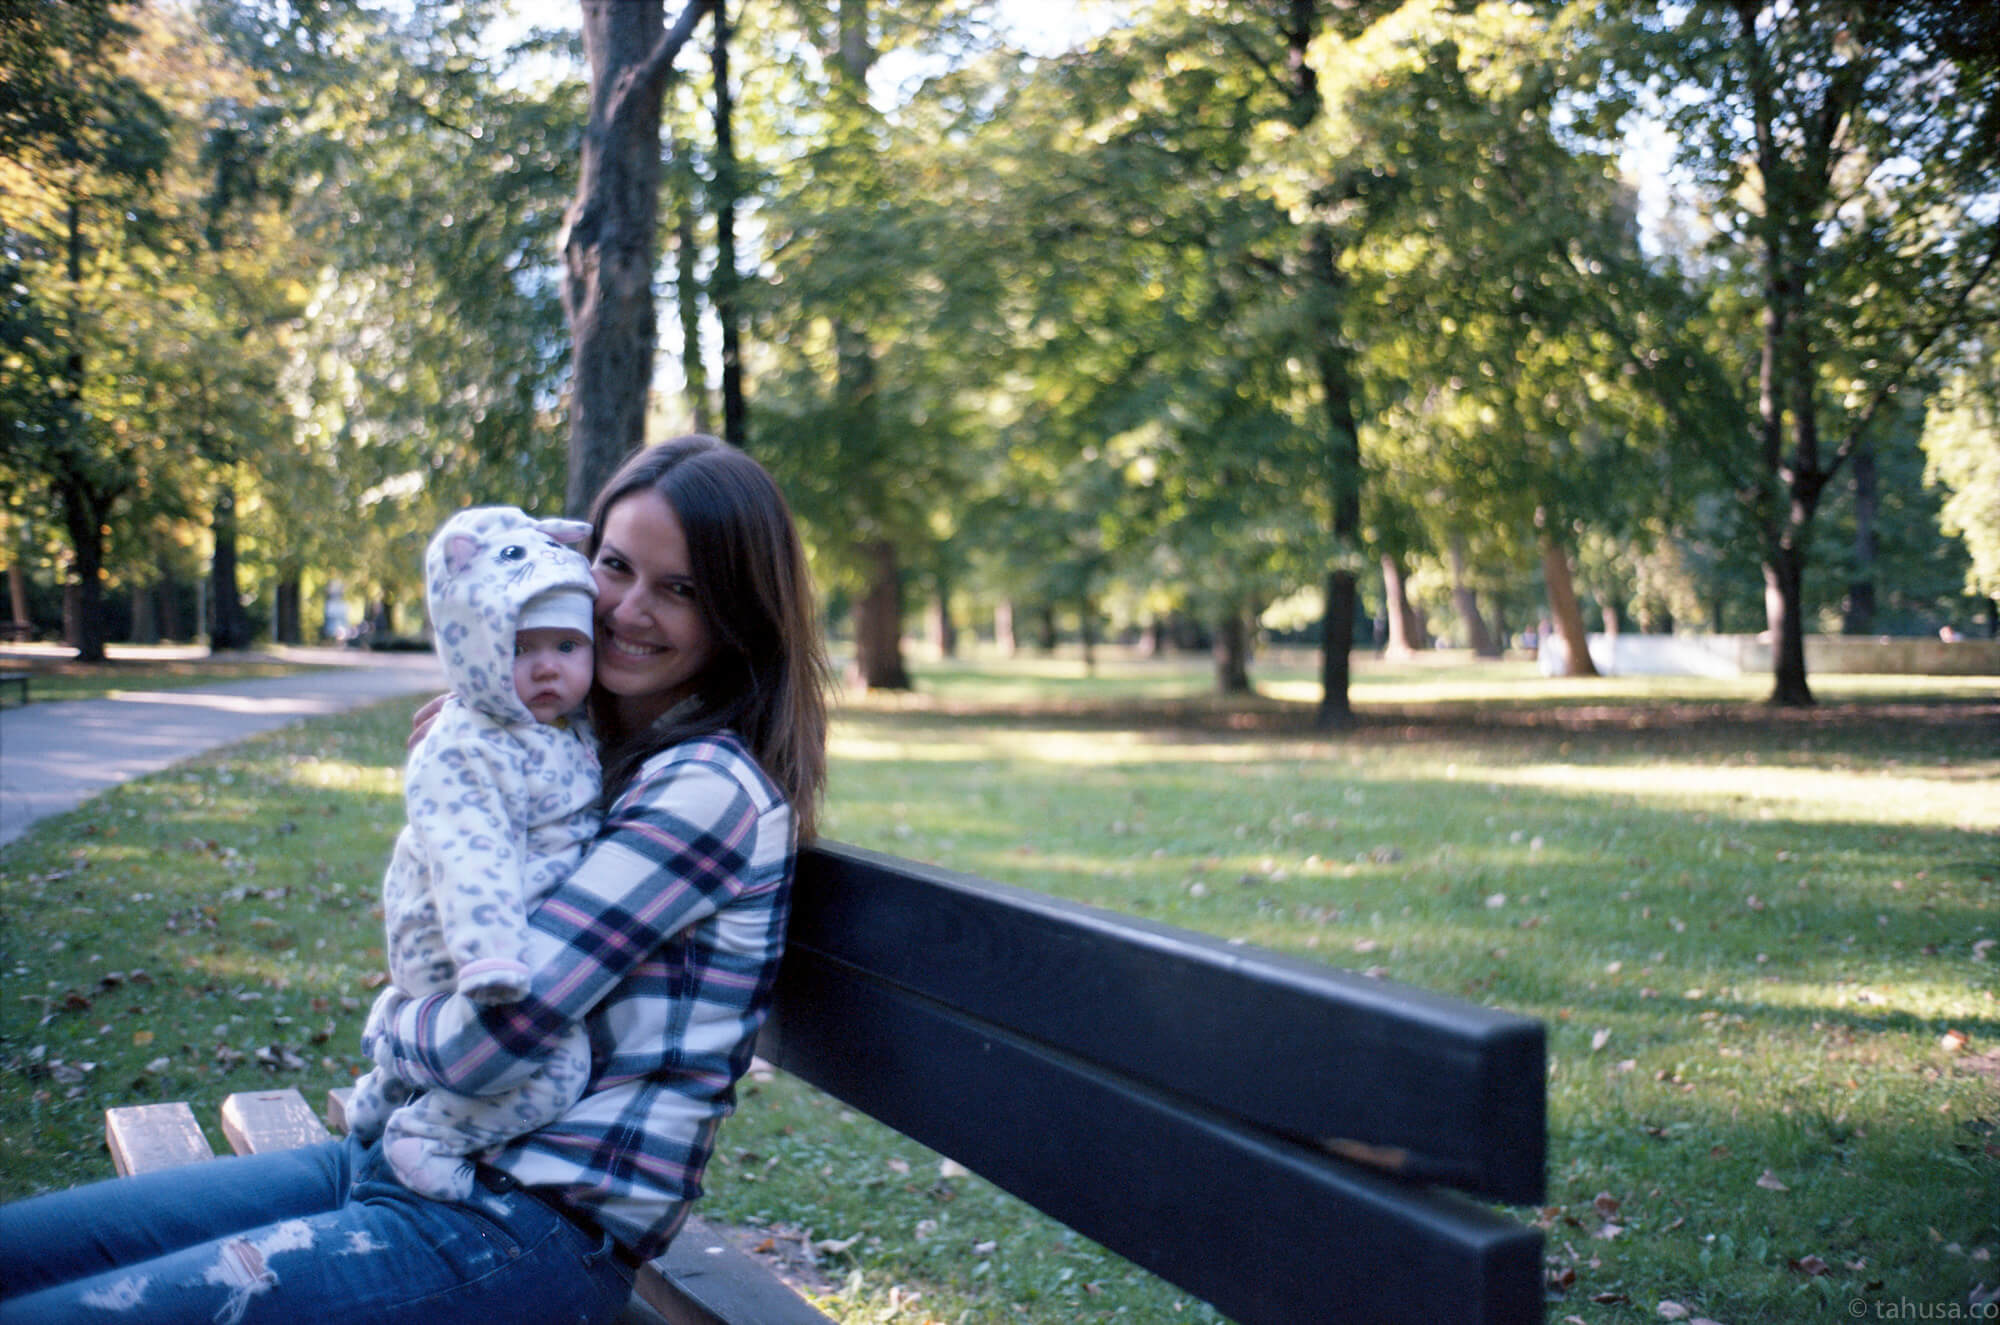 solvakia-bratislava-park-mother-holding-baby-let-me-take-pictures-travel-photography-using-ektar-100-kodak-and-summicron-35mm-f2-8elements-v1-leica-film